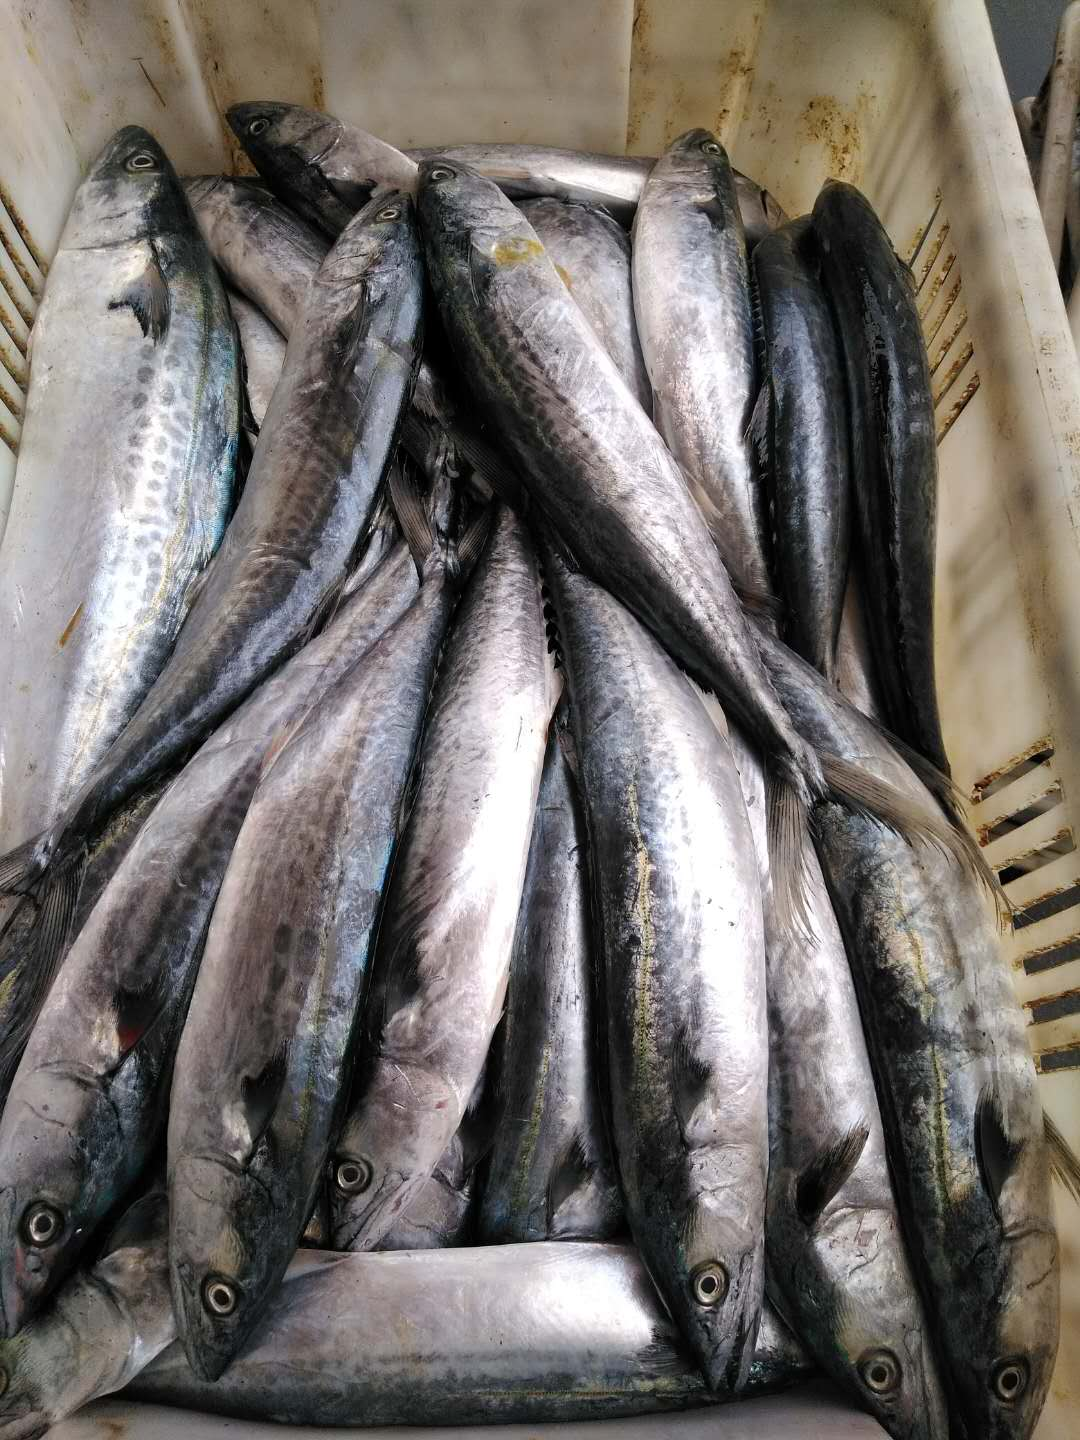 frozen spanish mackerel